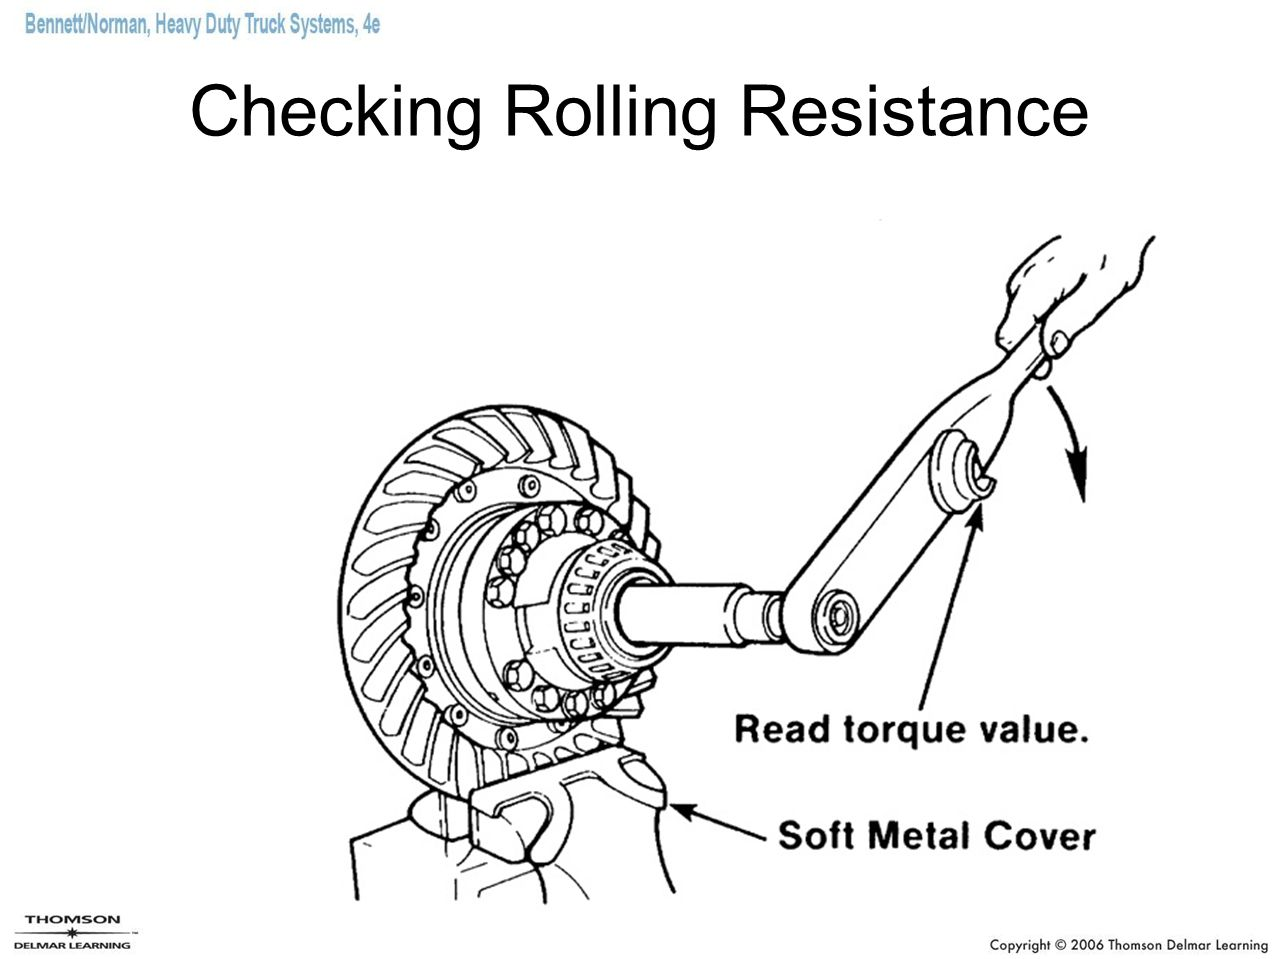 Checking Rolling Resistance